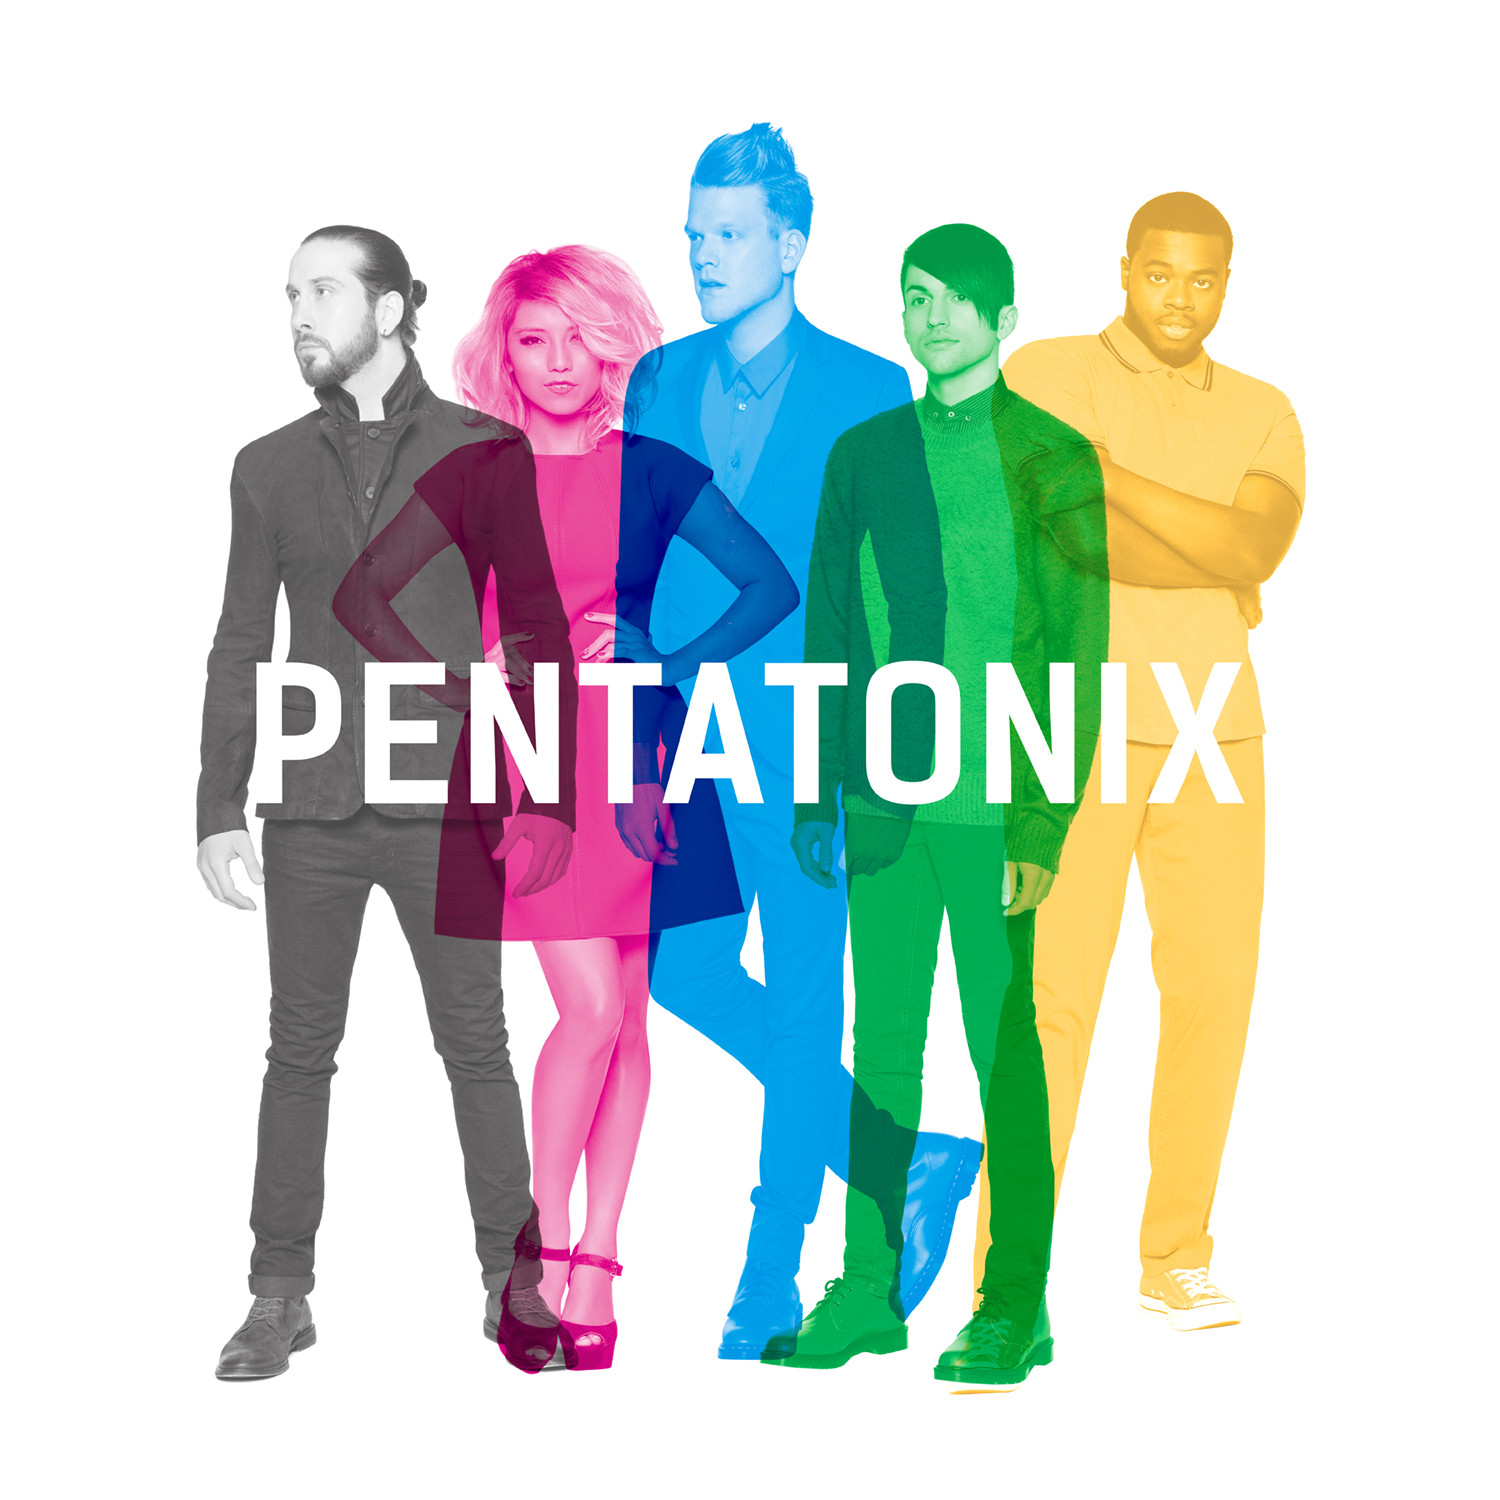 pentatonix album cover